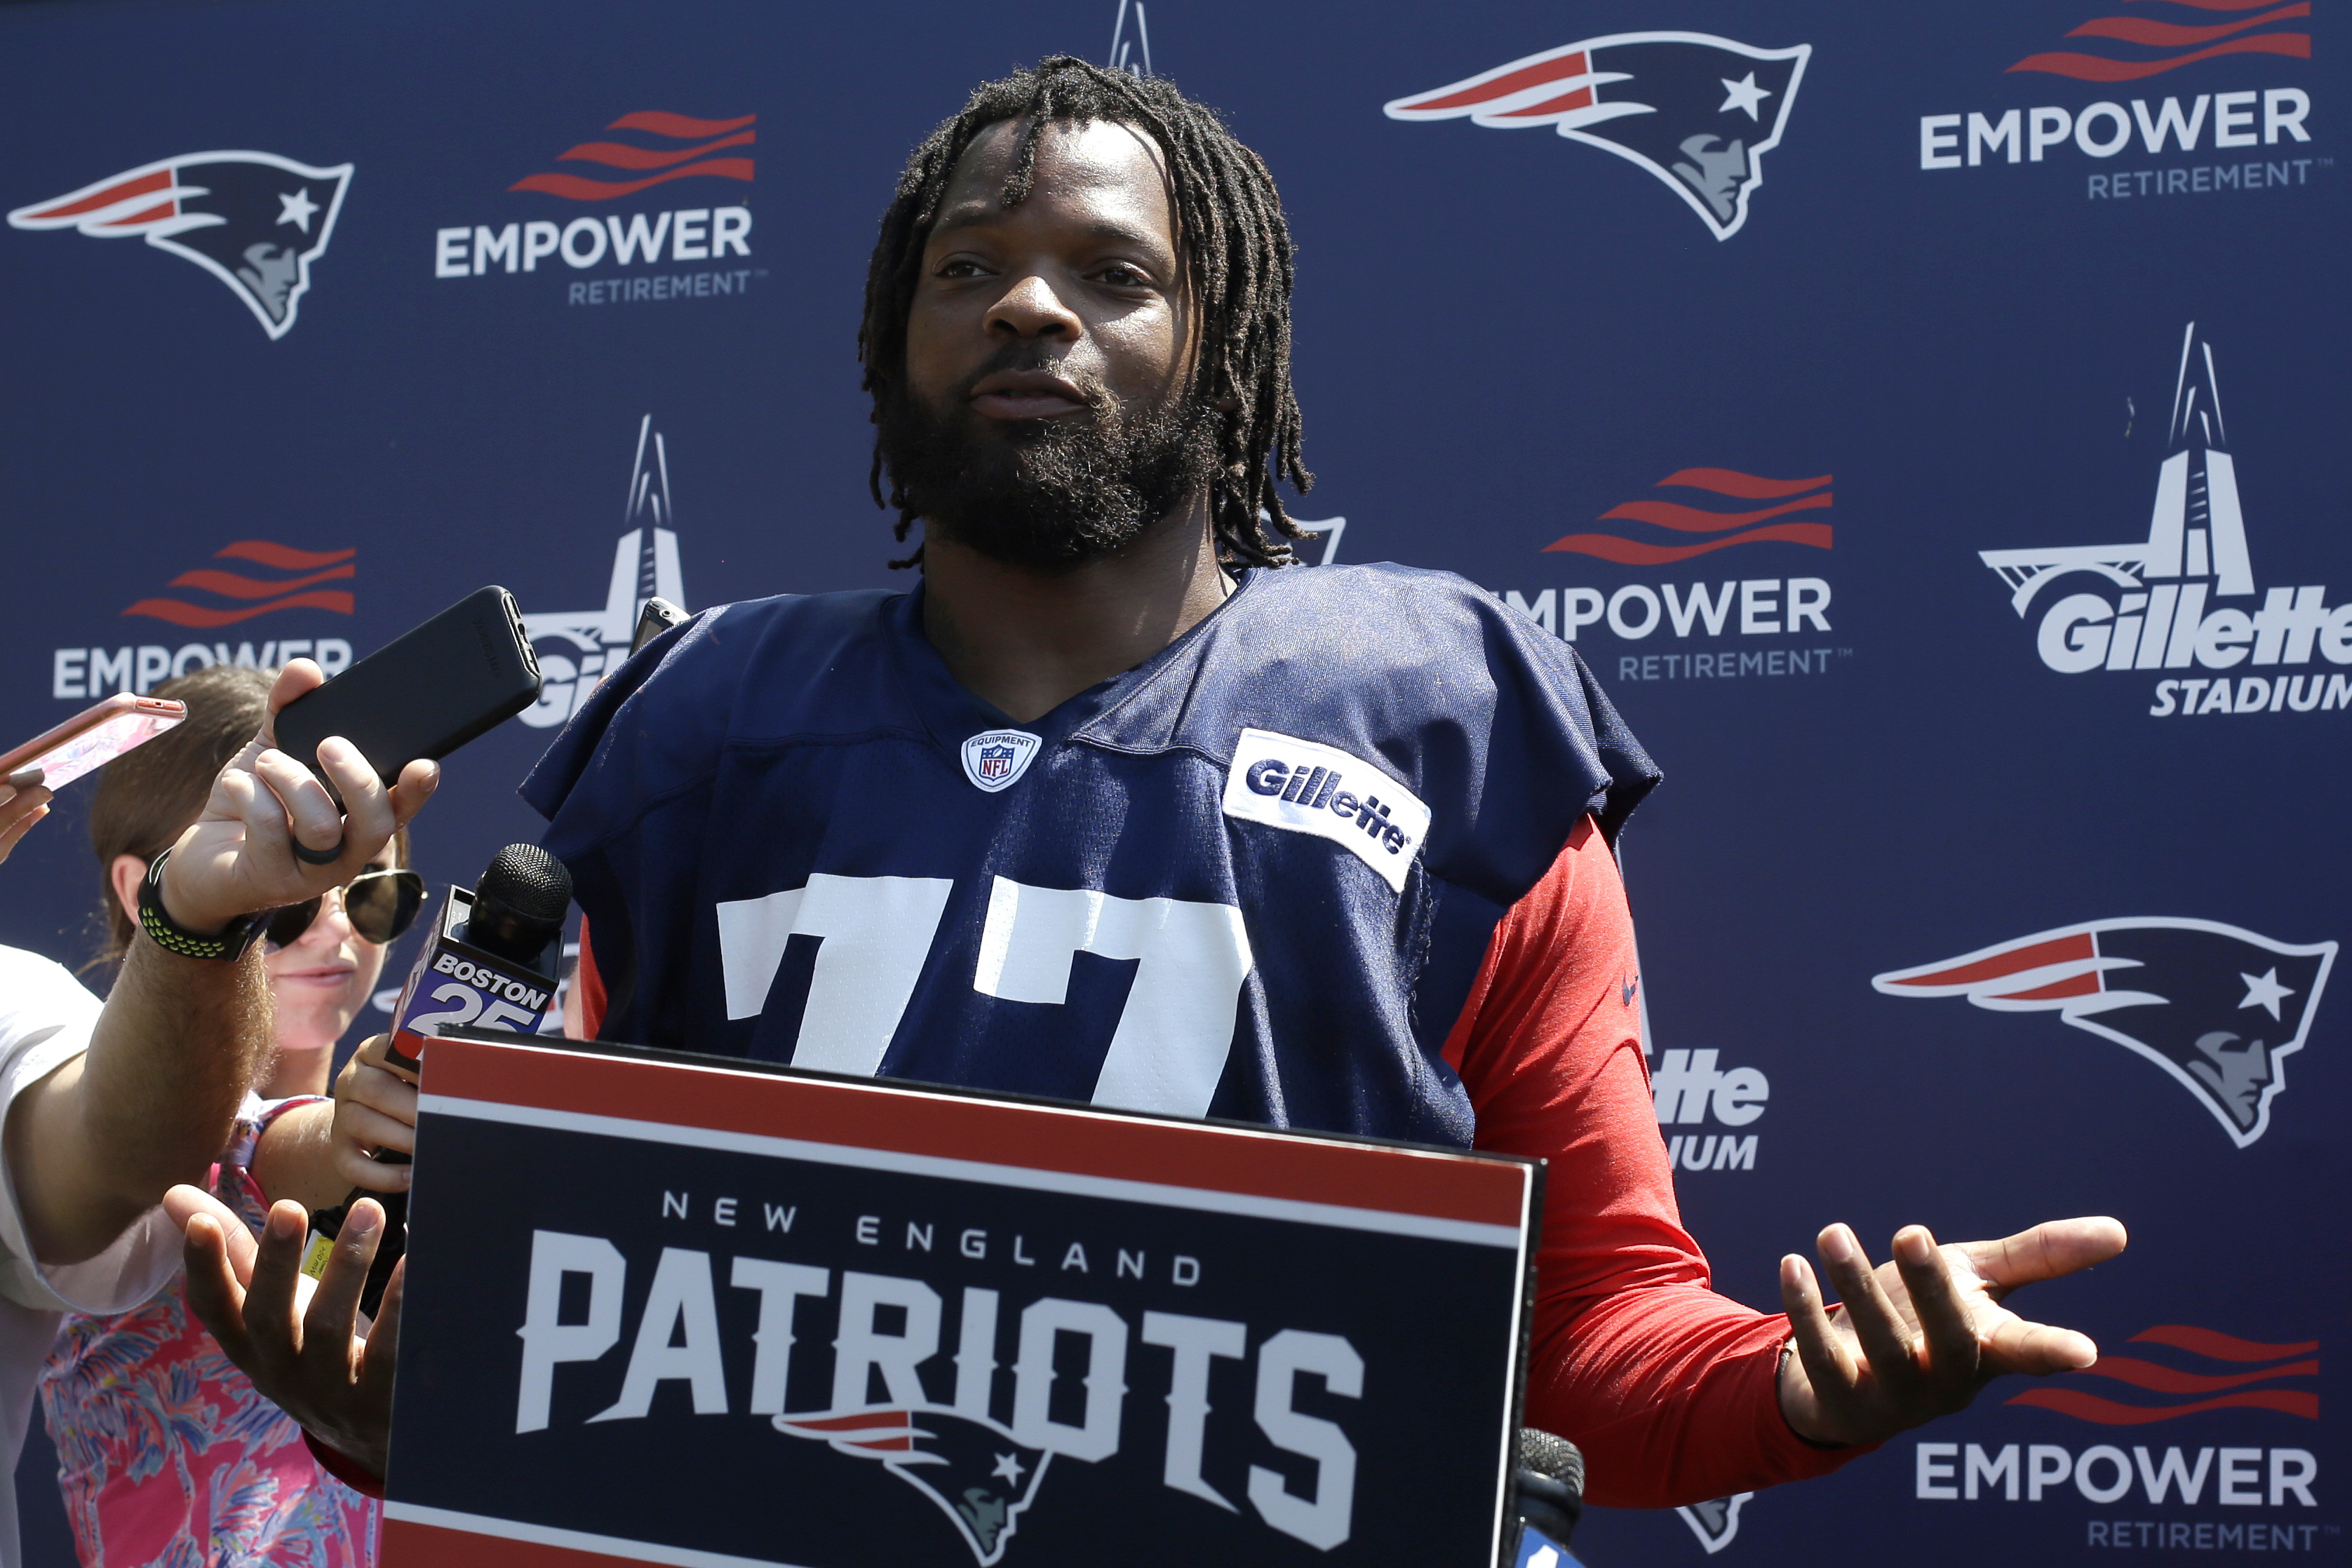 Former Eagles roundup: Patriots suspend Michael Bennett, Jets sign Blake Countess, Donnel Pumphrey selected in XFL Draft, more